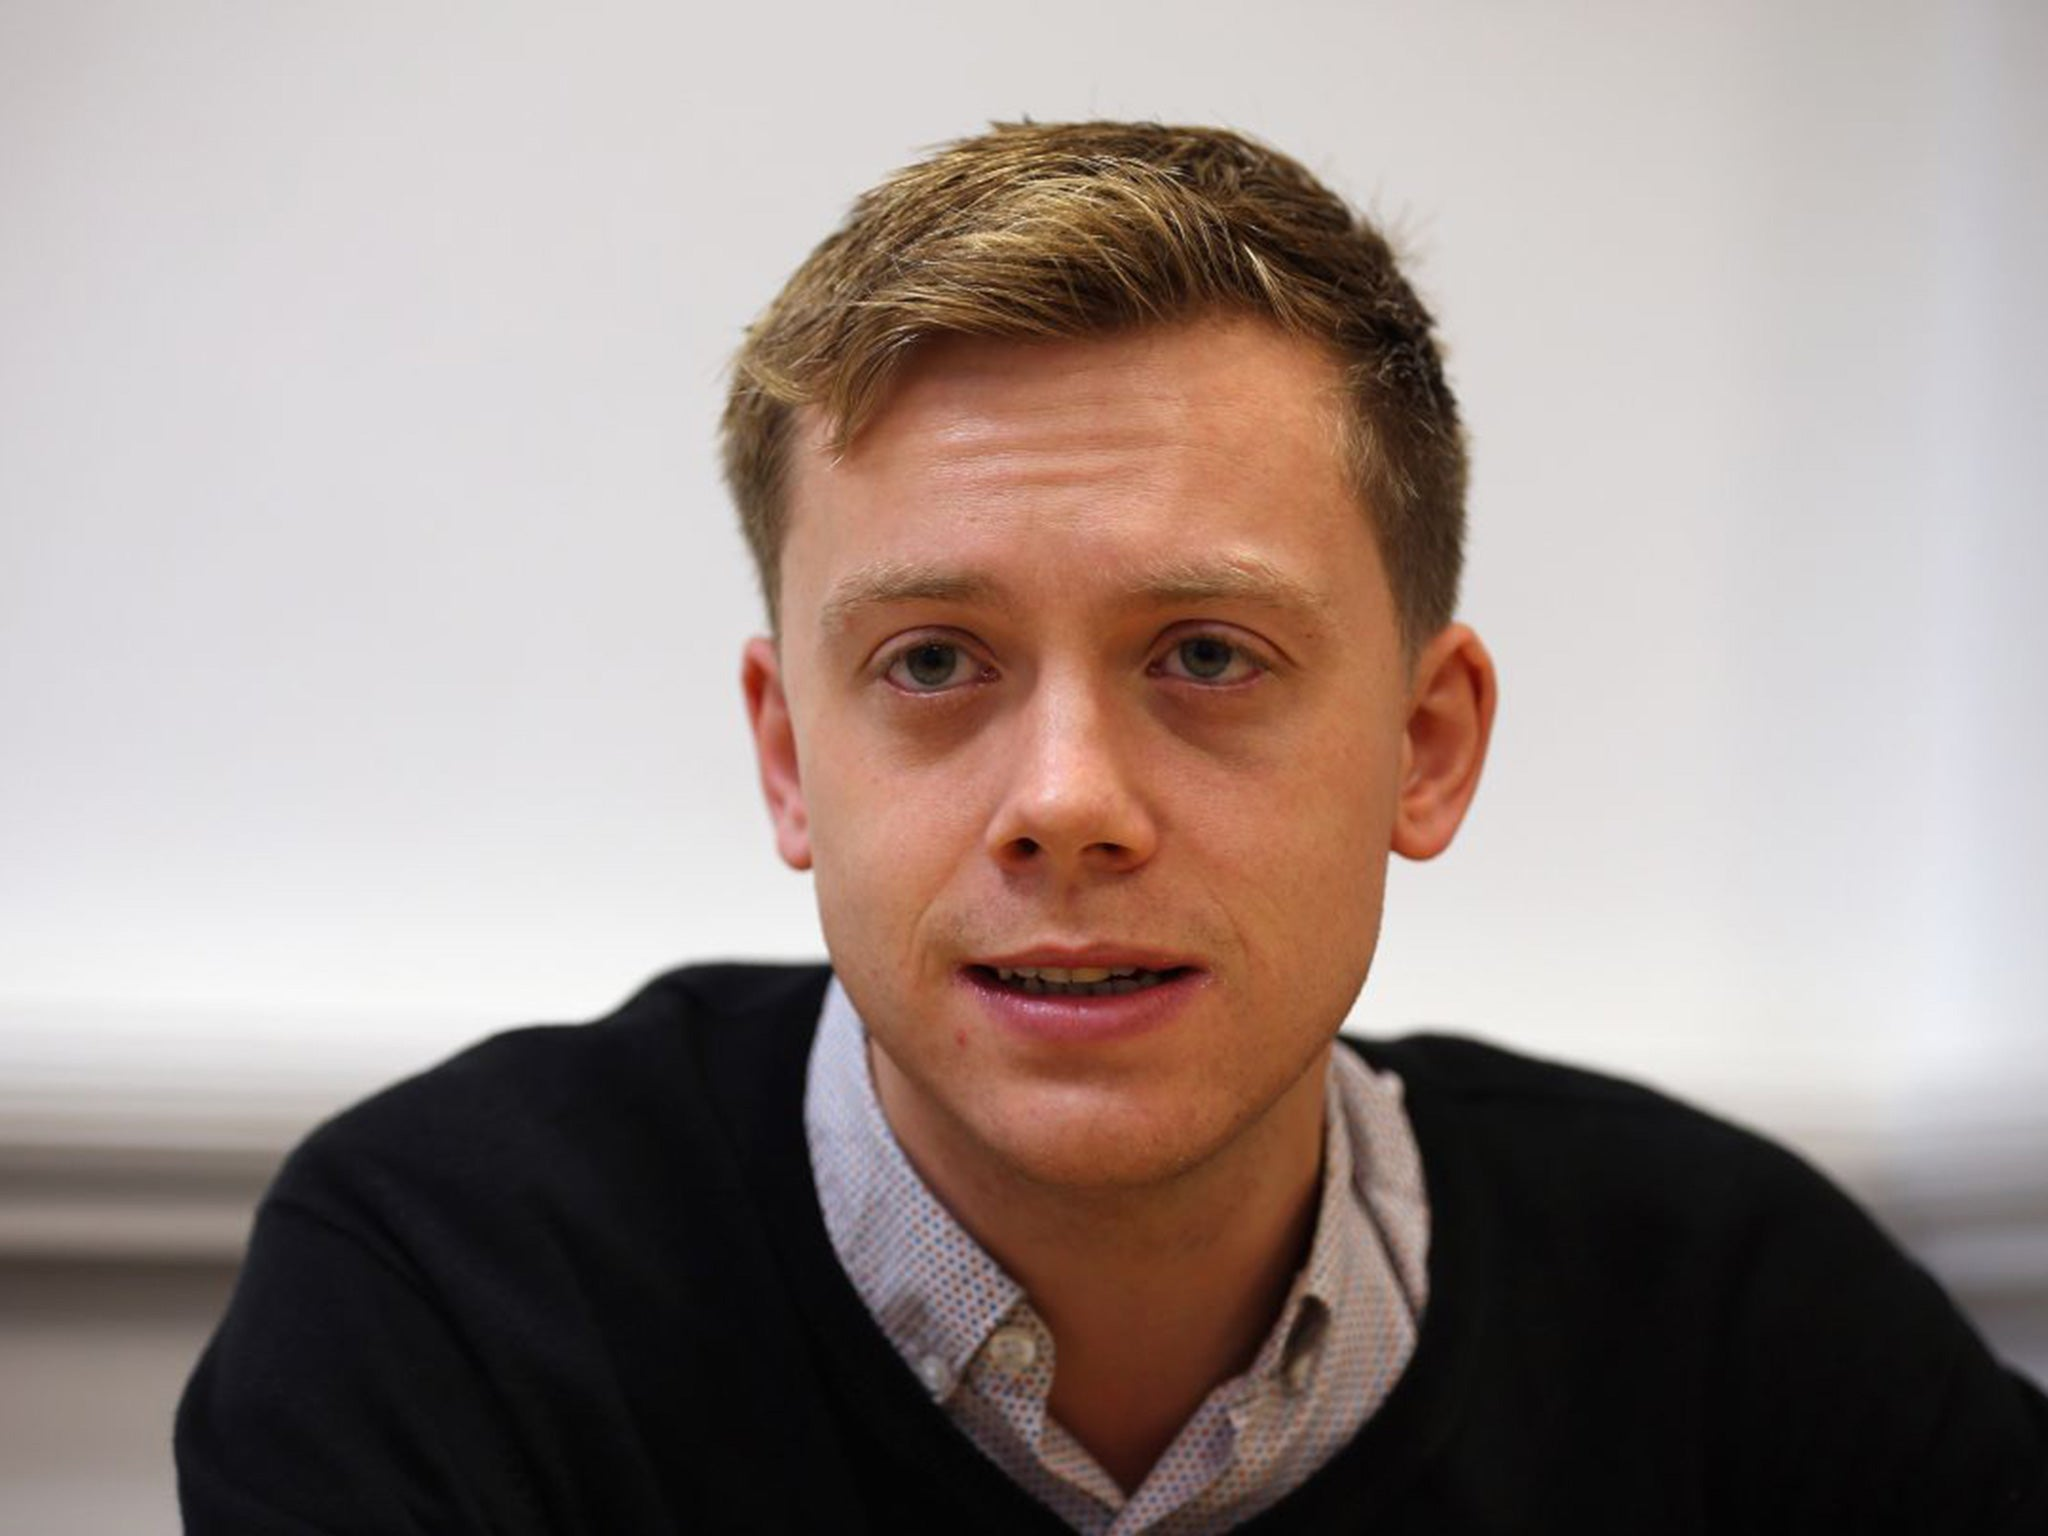 Owen Jones: Left-wing commentator attacked in 'blatant premeditated assault' outside London pub